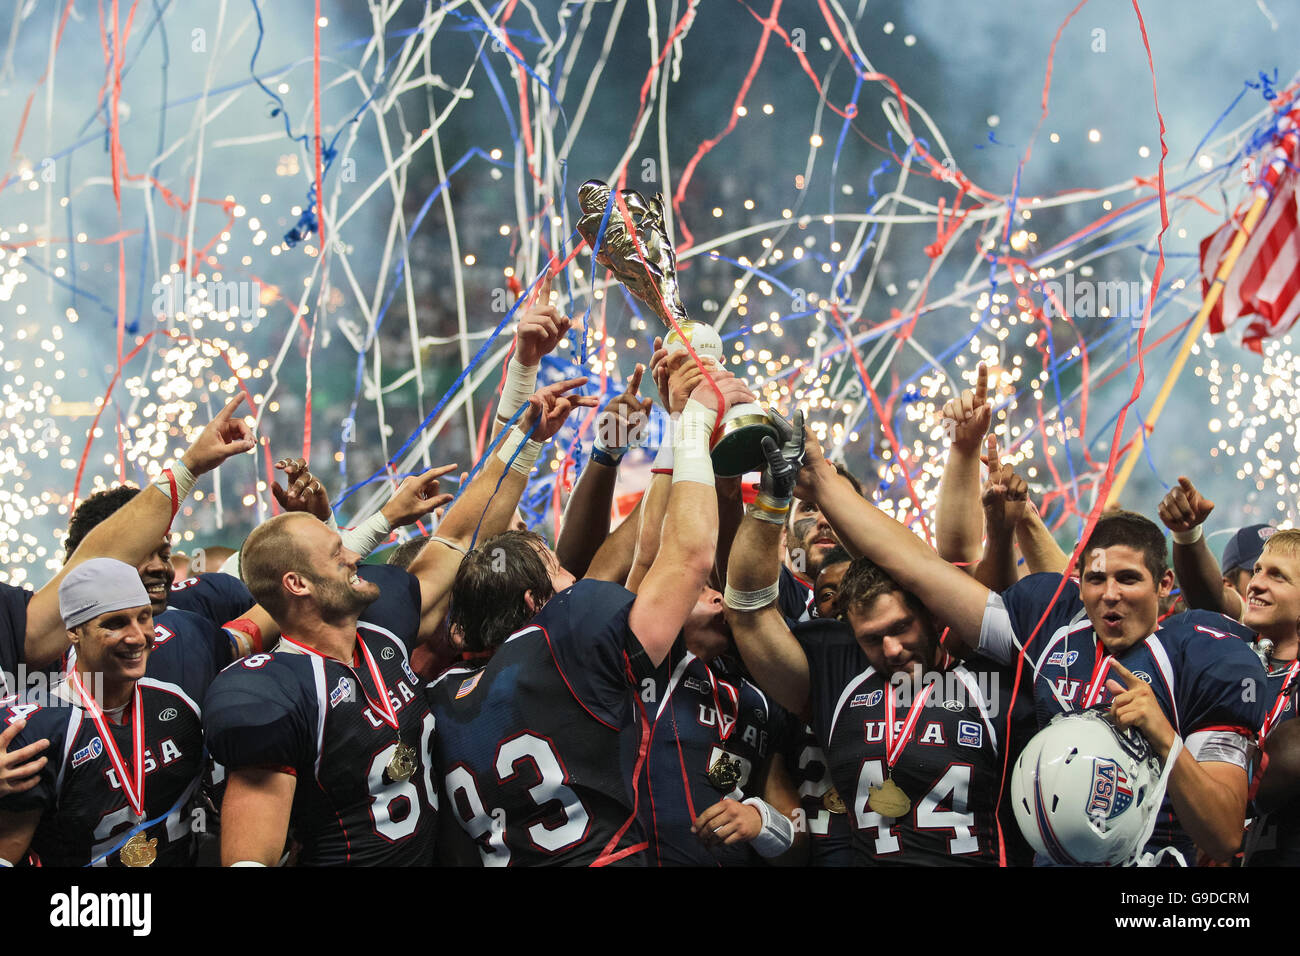 Team USA celebrates the victory at the Football World Championship on July 16, 2011, USA wins 50:7 against Canada - Stock Image